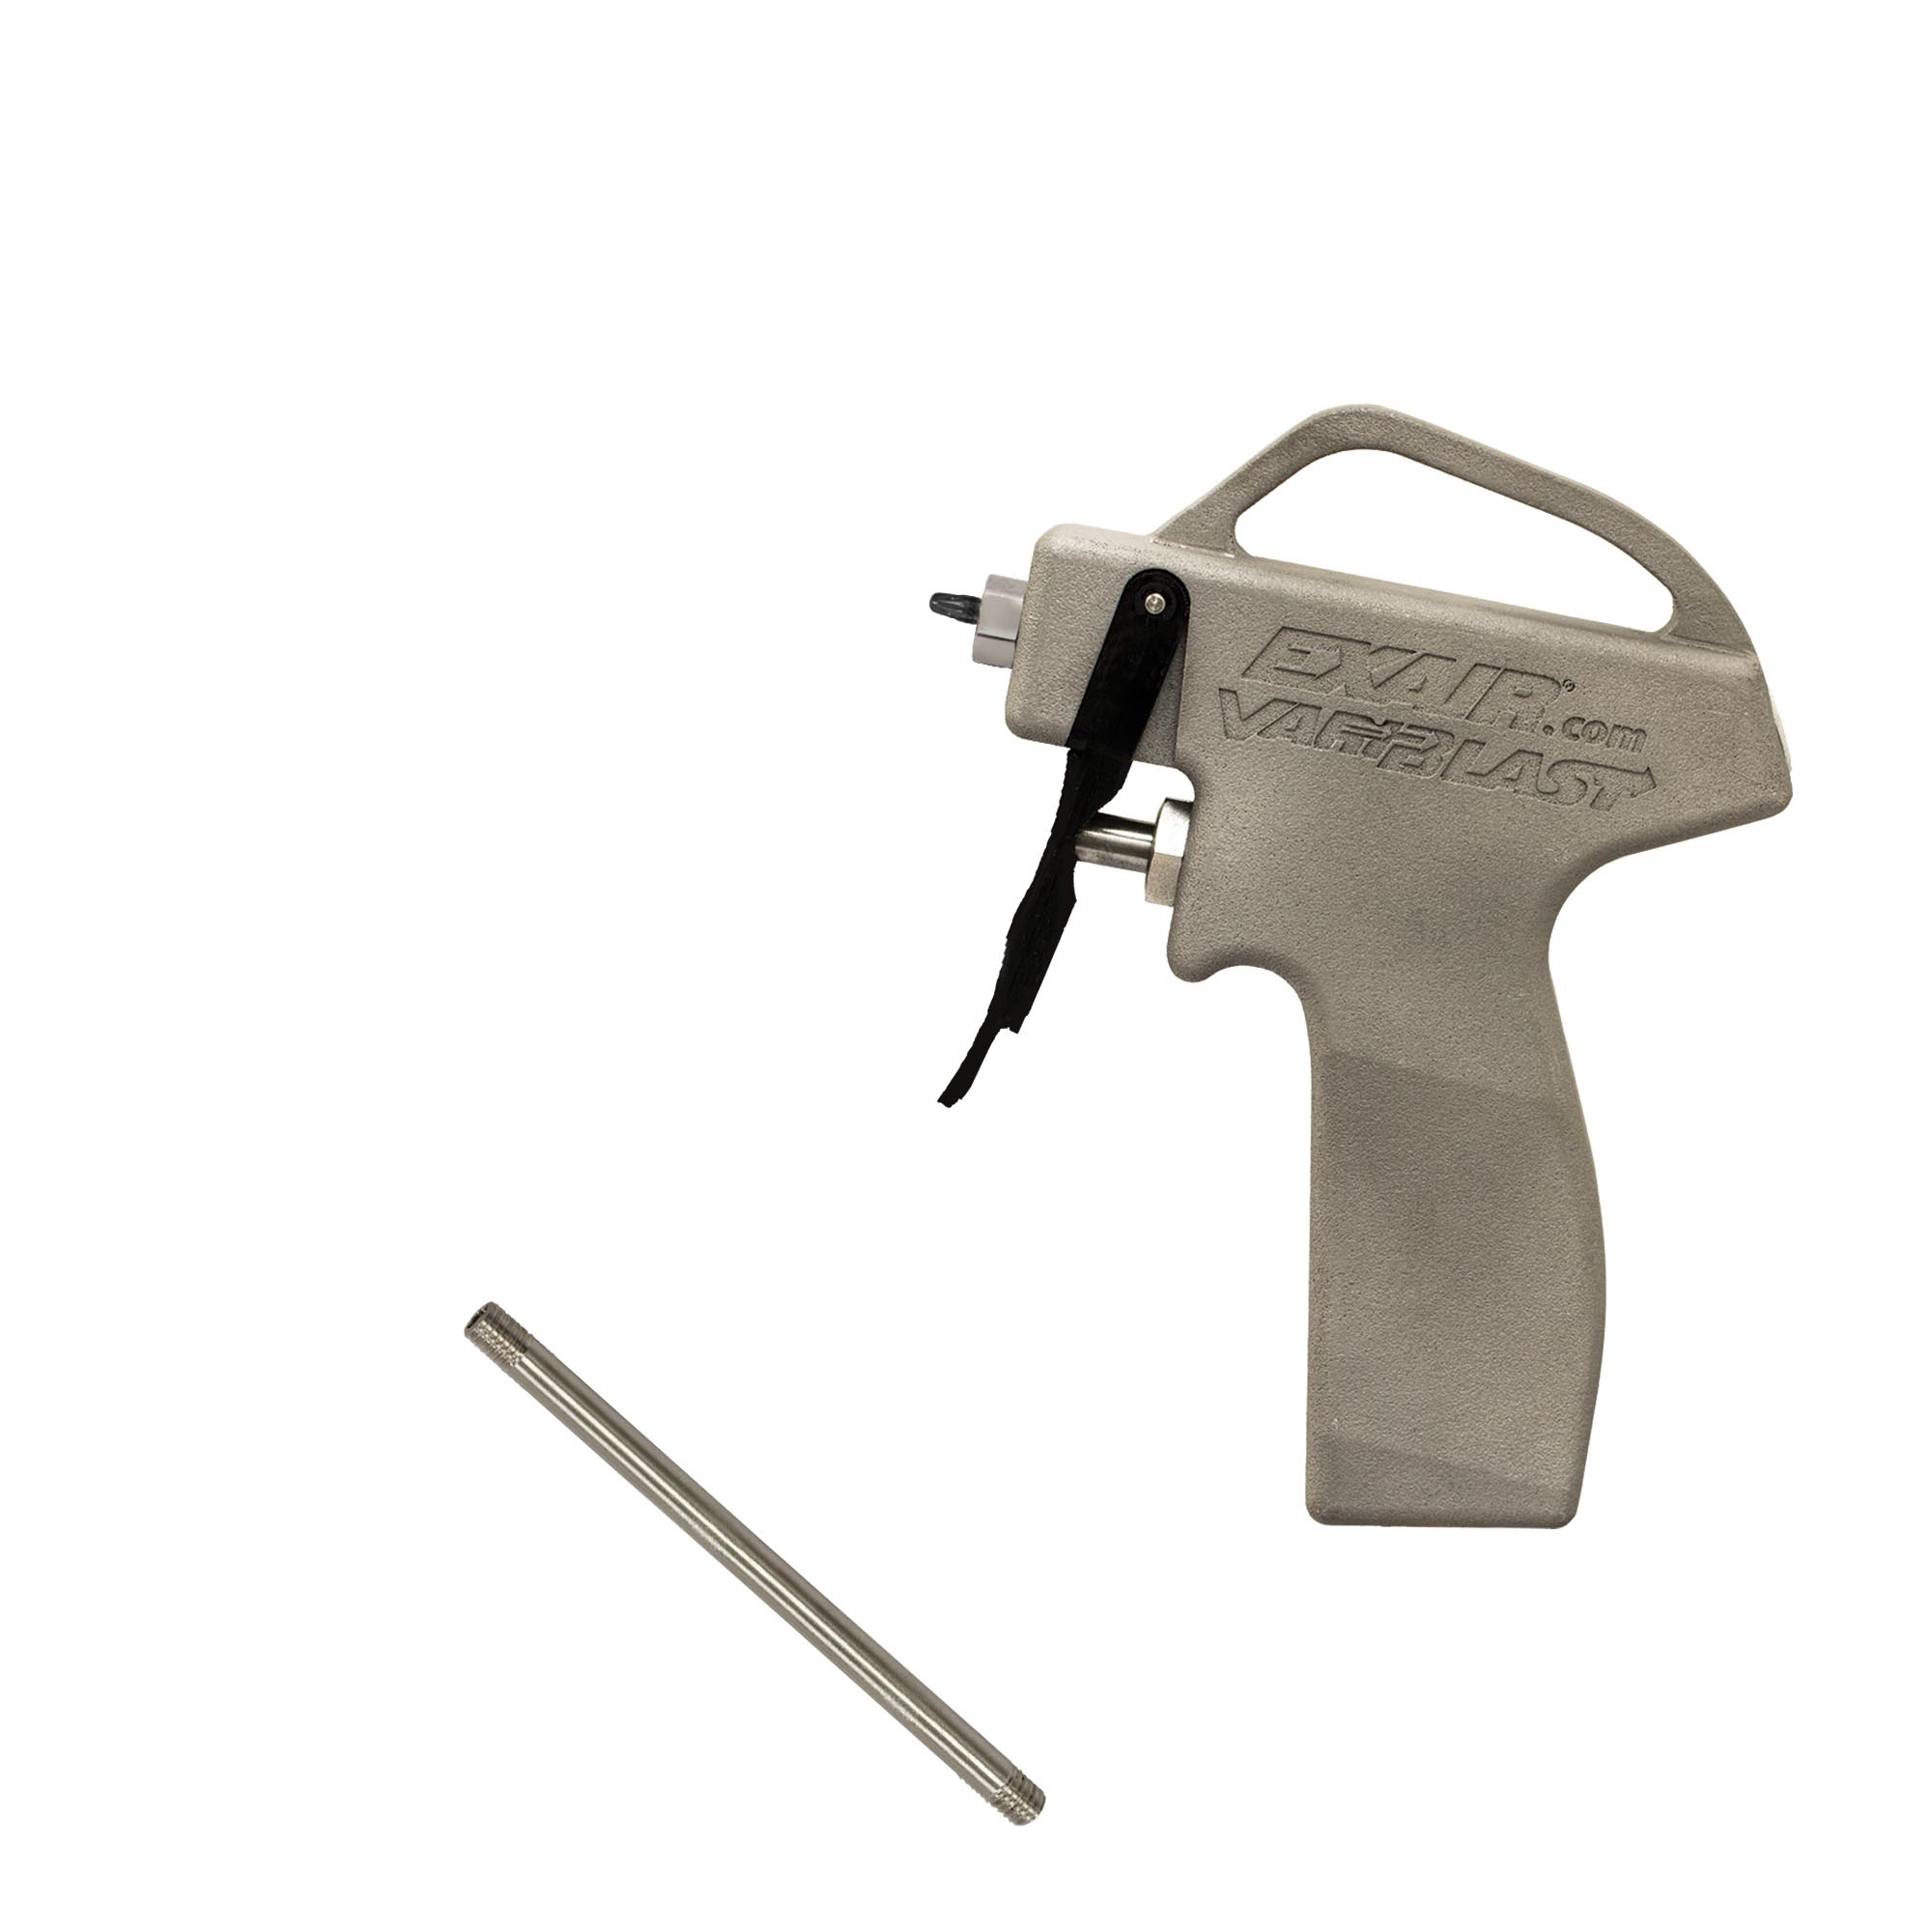 "Model 1696-PEEK-12 12"" VariBlast Compact Safety Air Gun with PEEK Nozzle and Extension Pipe"